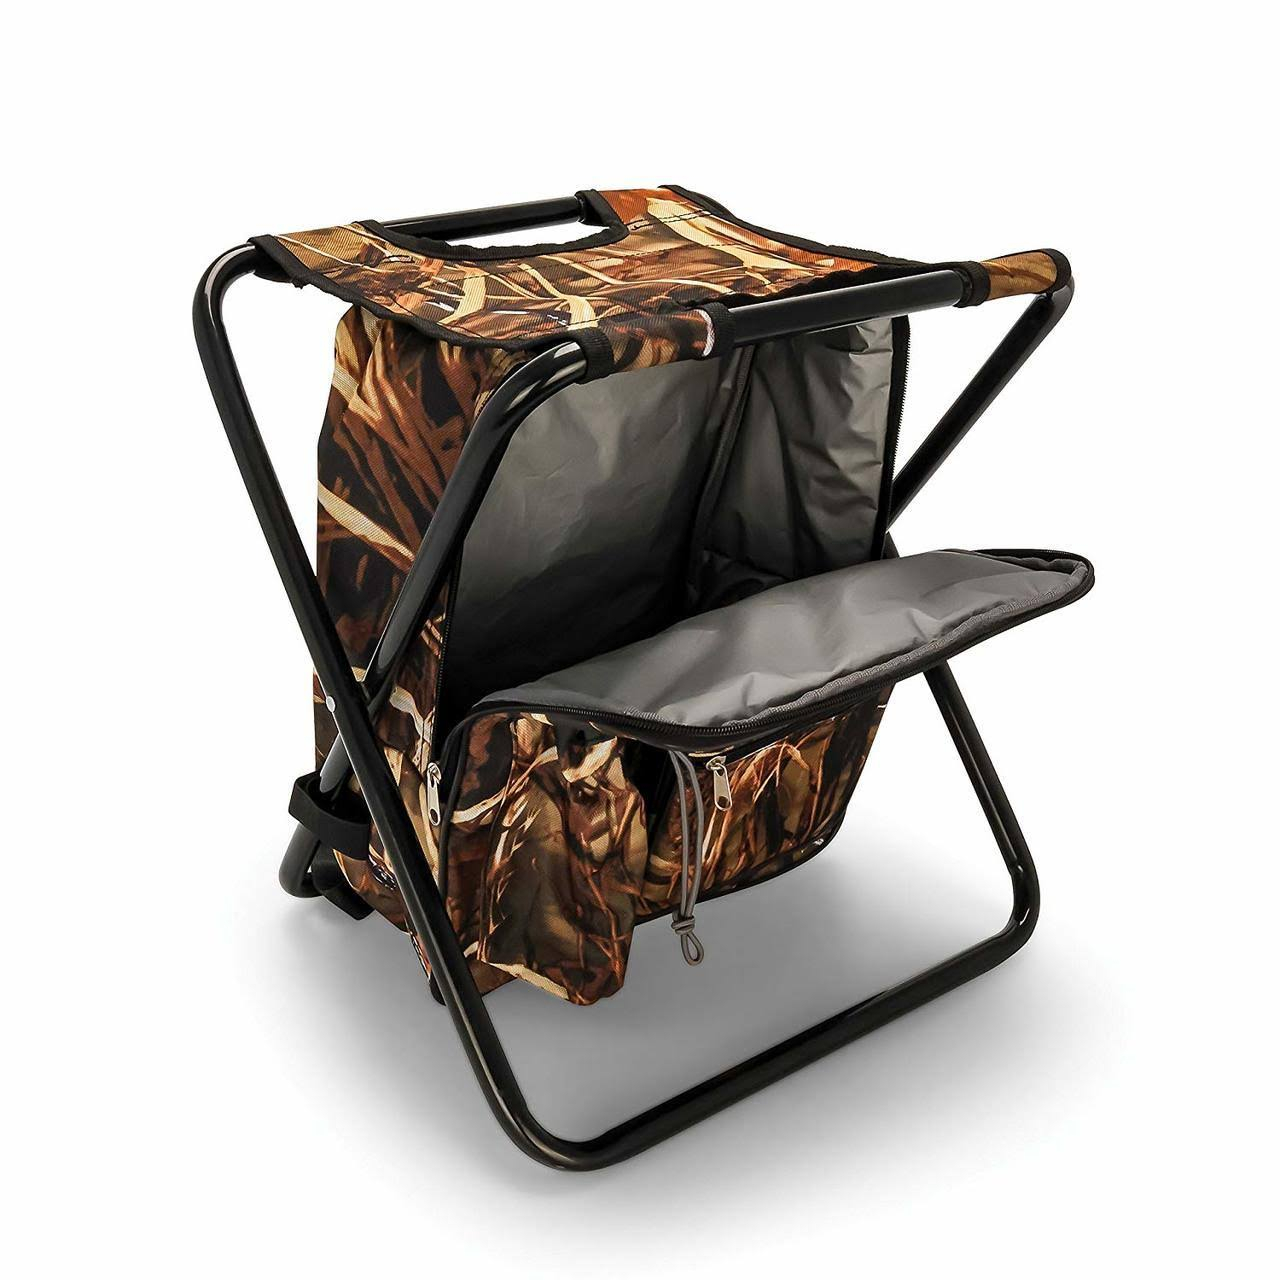 Camco 51908 Camping Stool Backpack, Cooler